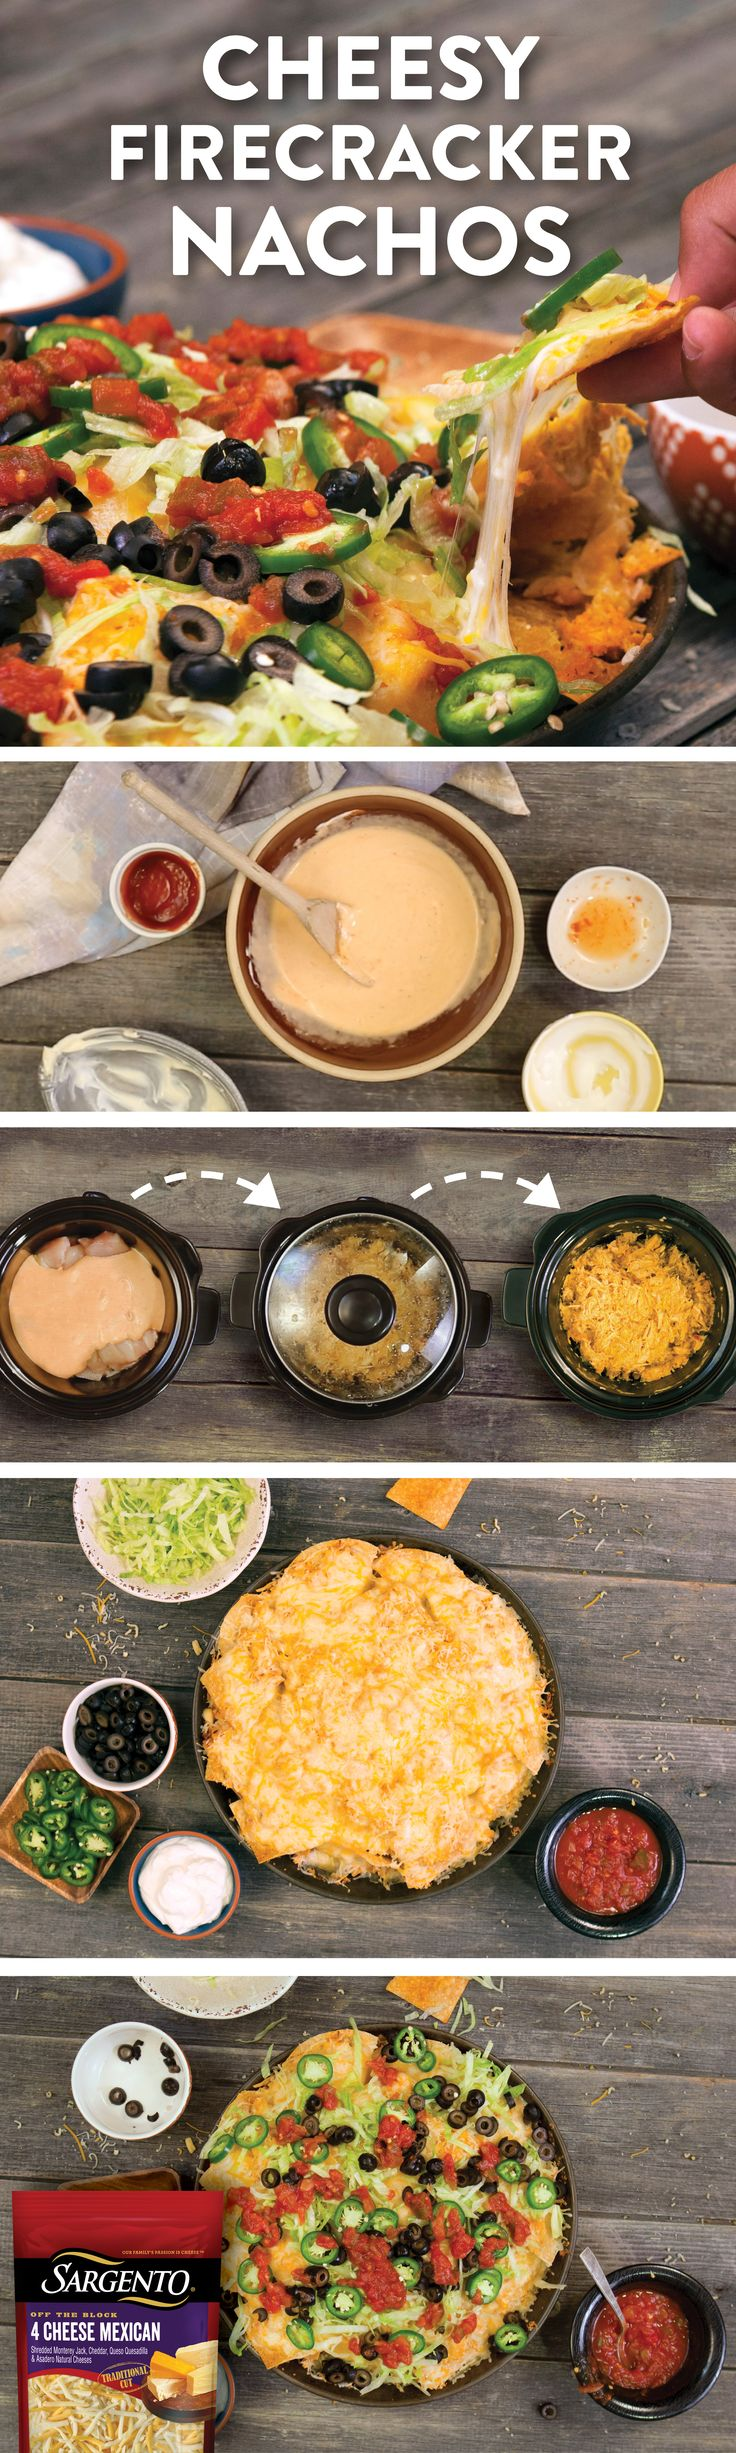 If you can handle the heat, then we recommend that you stay in this cheesy kitchen because these nachos are a fiery treat. We've layered crispy tortilla chips with shredded chicken breasts that have been tossed in a sriracha garlic mayo. Then top them off with melted, creamy, Sargento ® 4-Cheese Mexican shredded cheese.